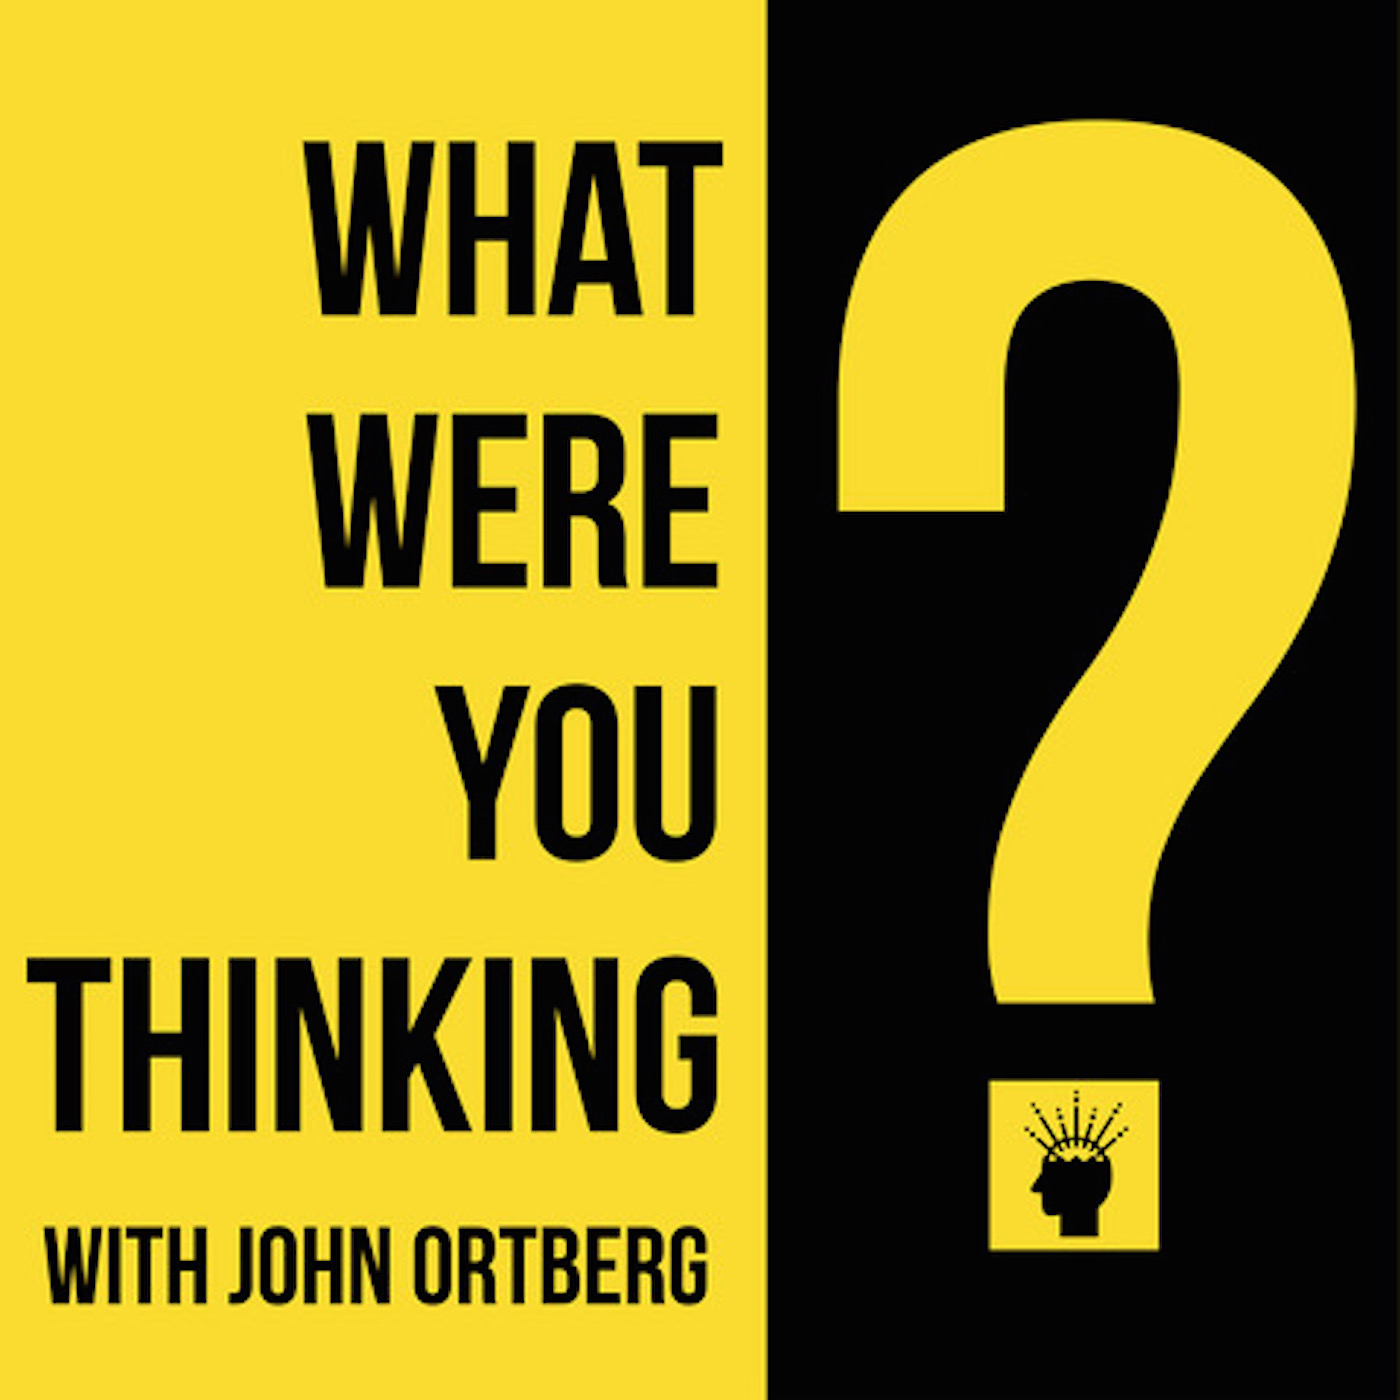 What Were You Thinking? With John Ortberg show art